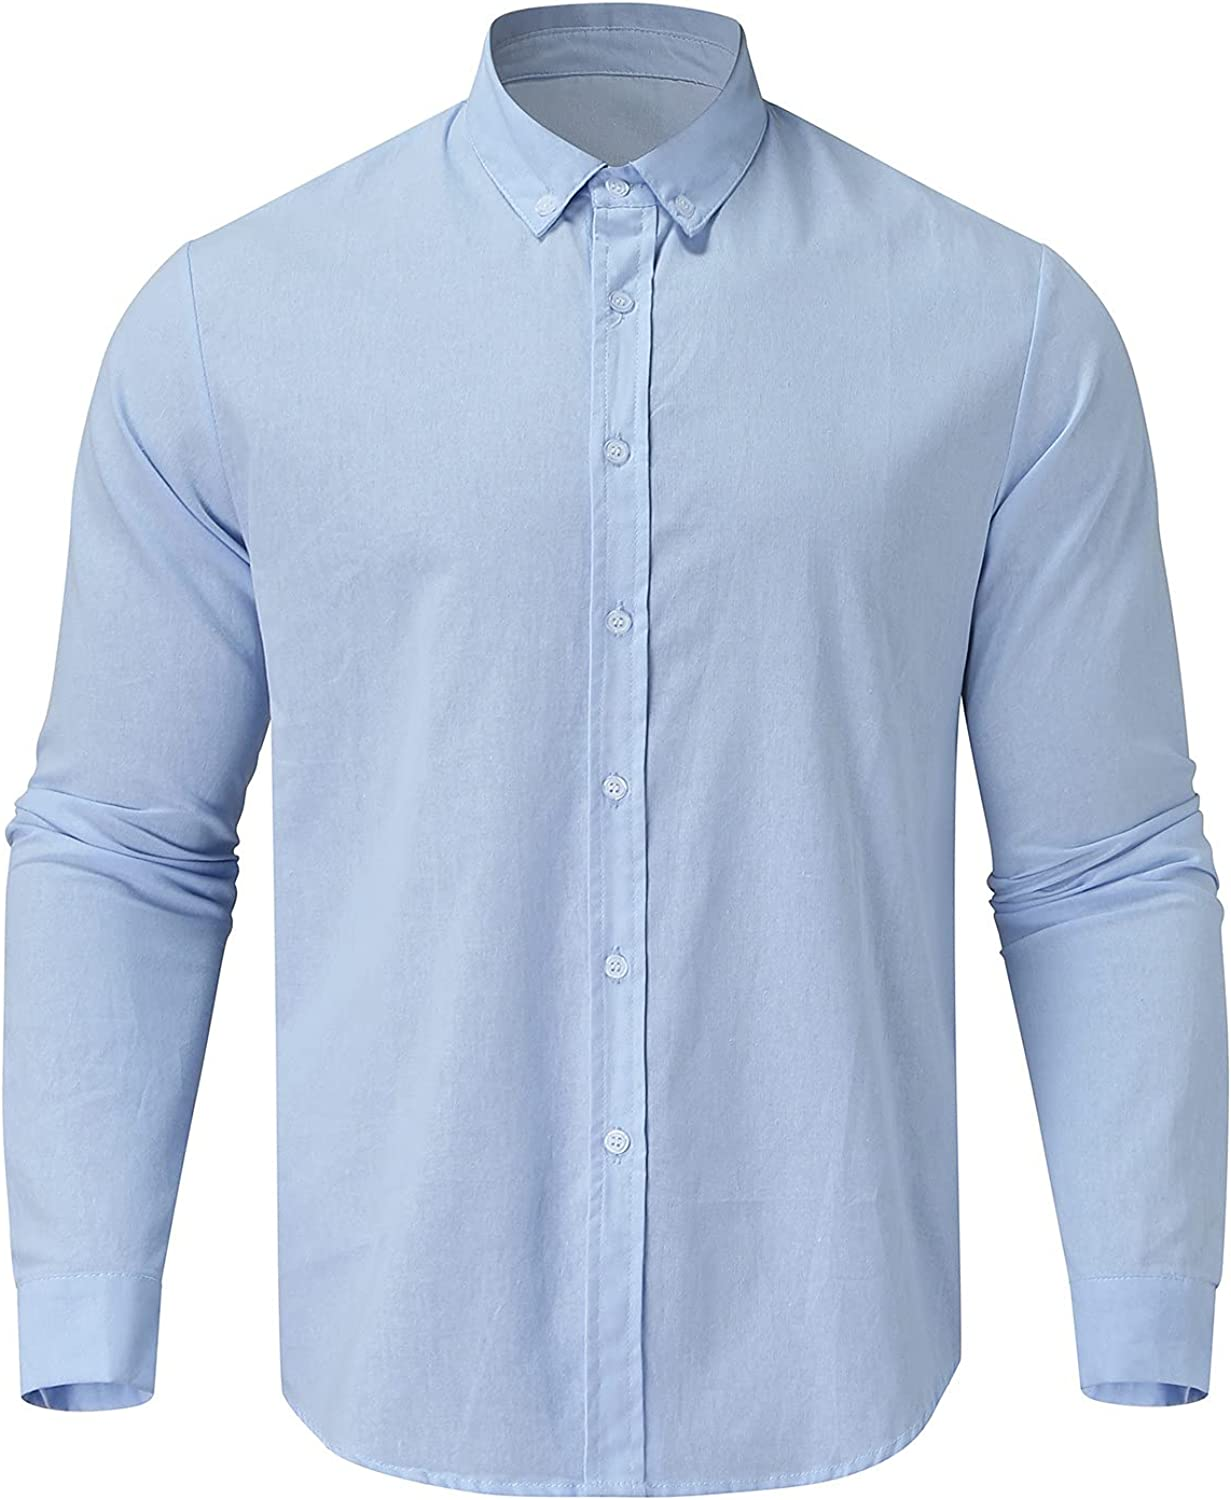 Shirt for Men Casual Turndown Collar Solid Color Long Sleeve Slim Fit Classic Button Down Blouse Lightweight Tunic